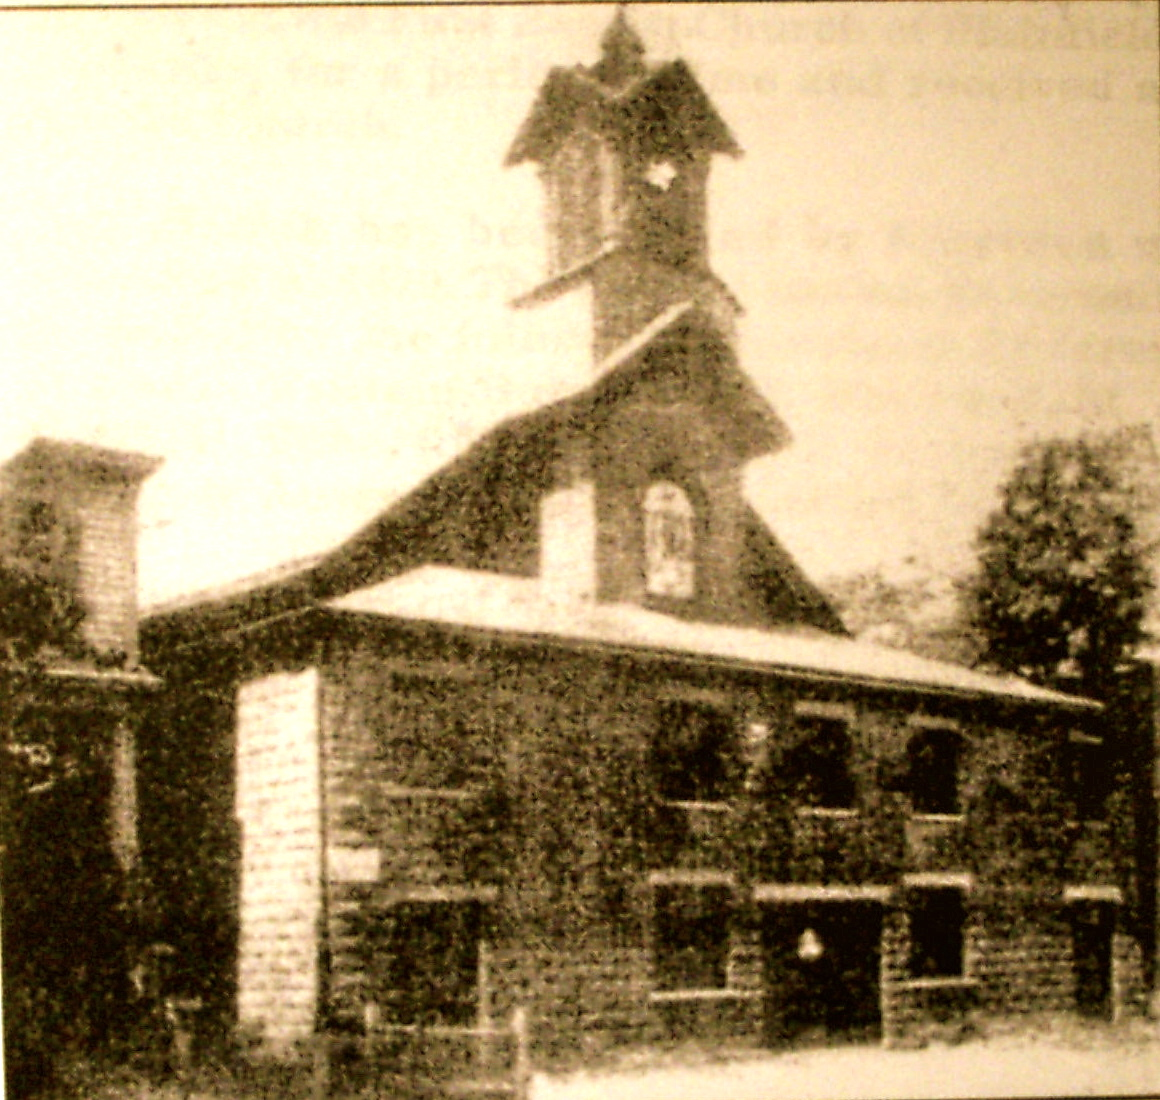 42-*MOUNT OLIVE BAPTIST CHURCH (1870) OLD CHURCH PLAINFIELD, NEW JERSEY (c. MOUNT OLIVE BAPTIST CHURCH) copy